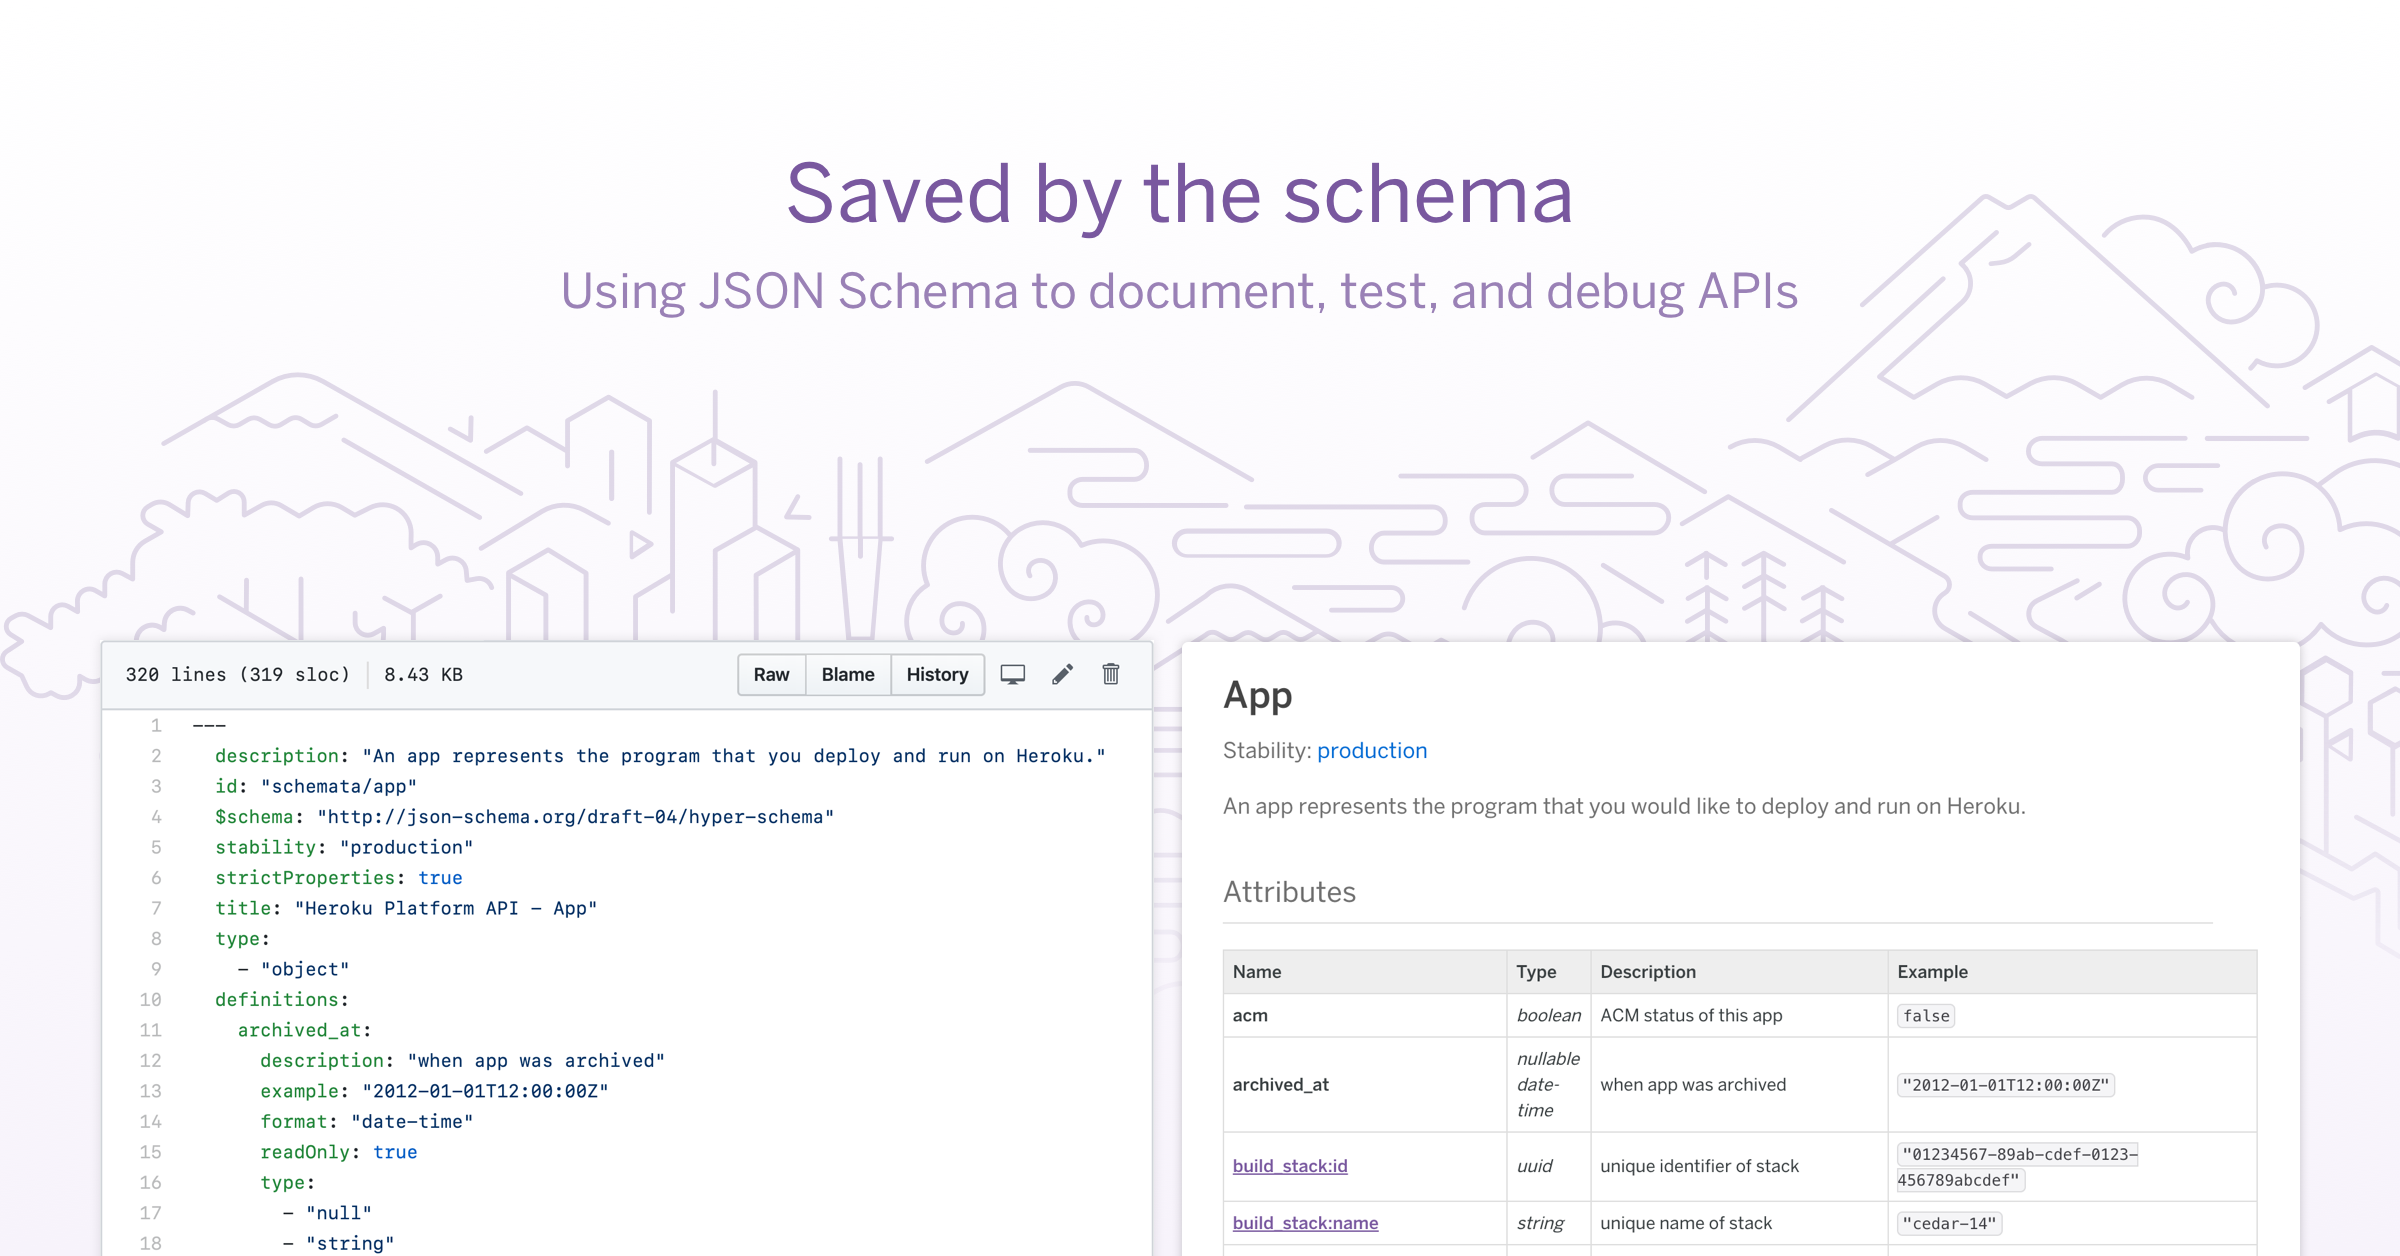 Saved_by_the_schema_02